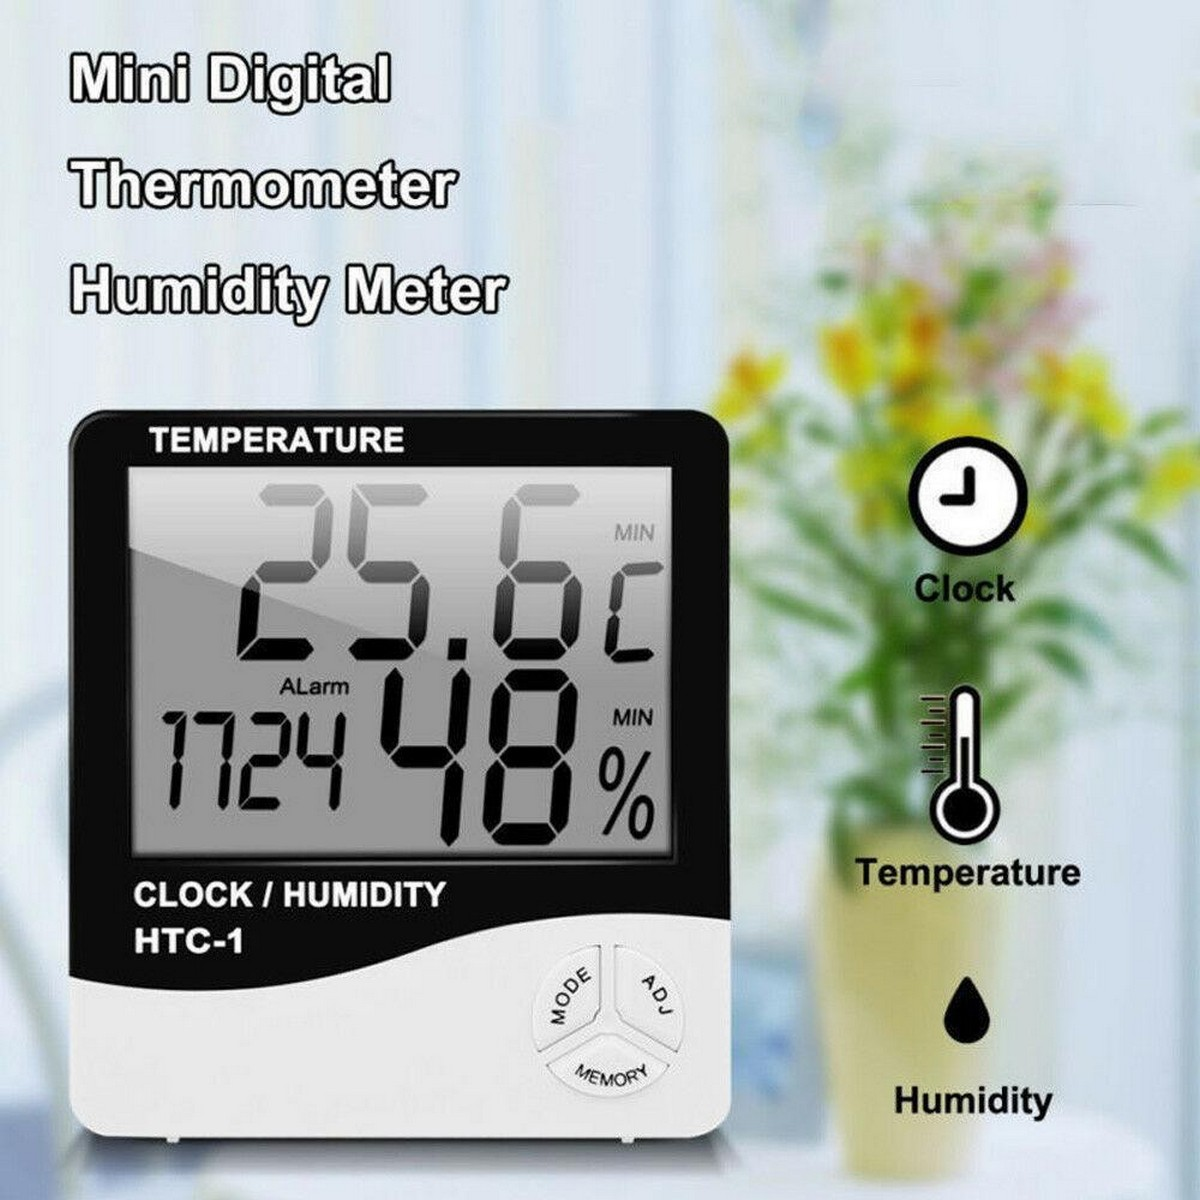 HTC-1 Or HTC-2  Electronic Temperature Humidity Meter, For Medical Indoor Room LCD Digital Thermometer Hygrometer Weather Station Alarm Clock